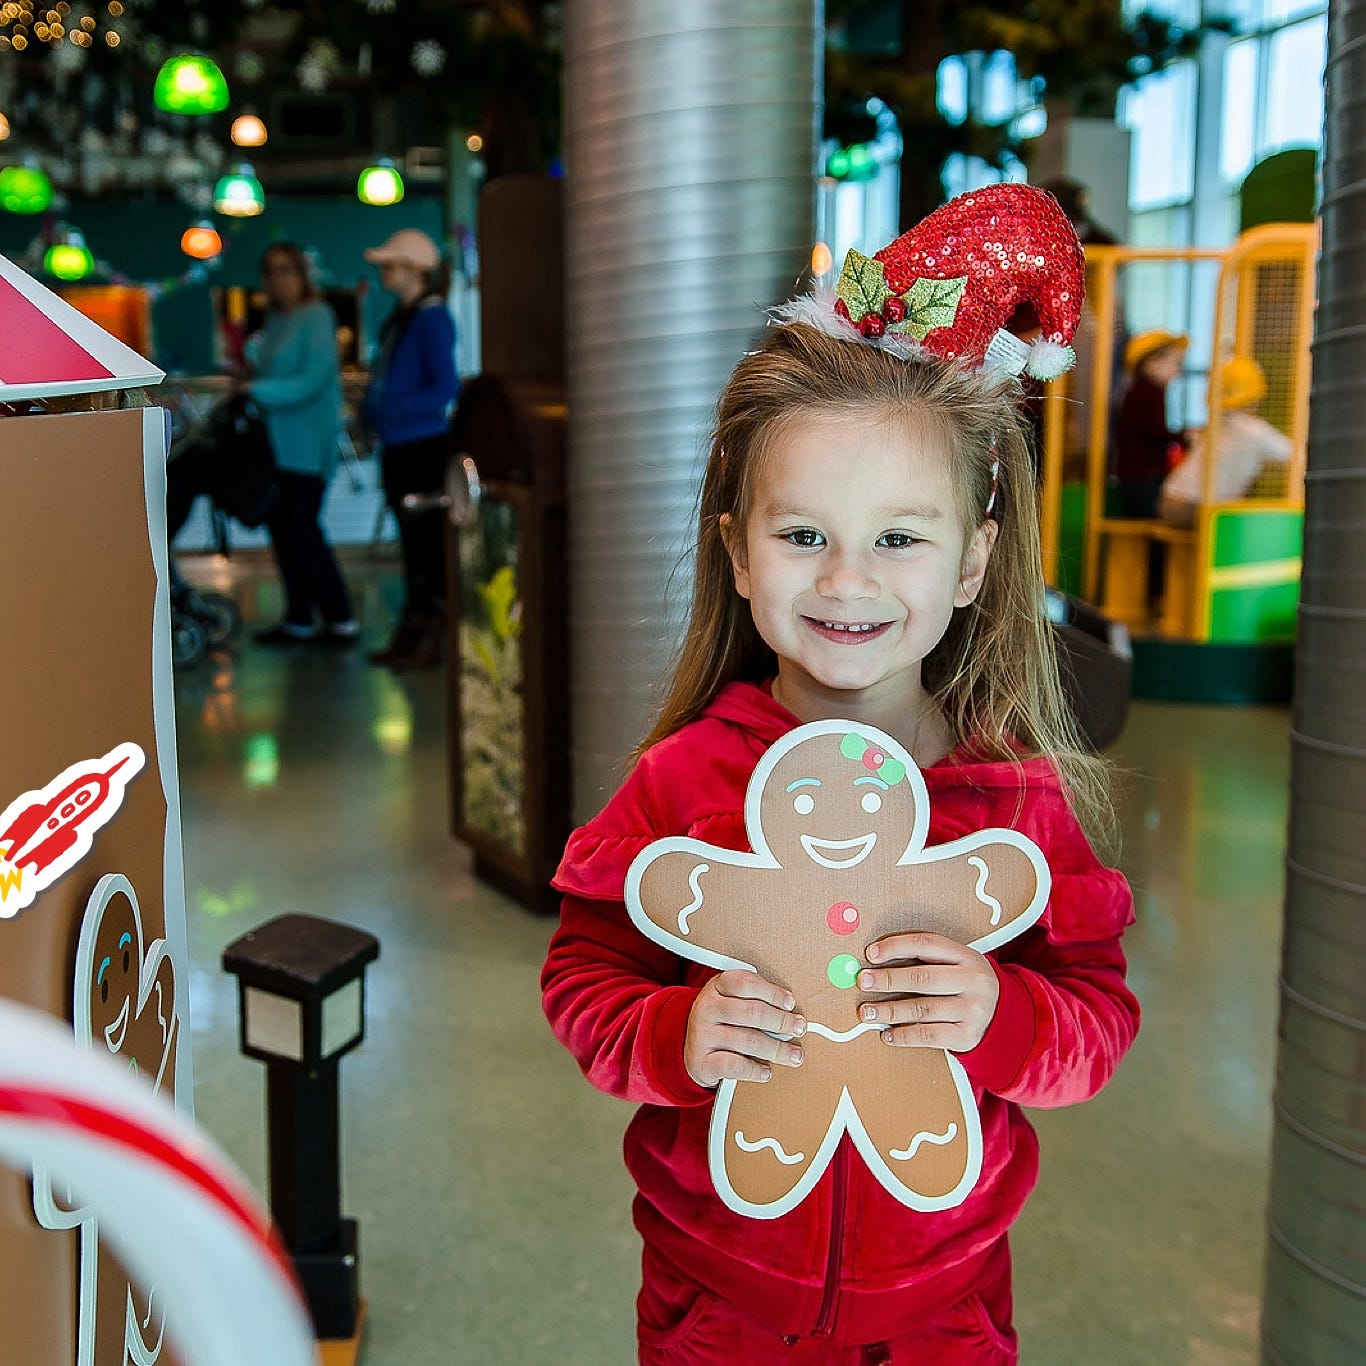 List: Christmas events, holiday activities for families in the Jackson metro